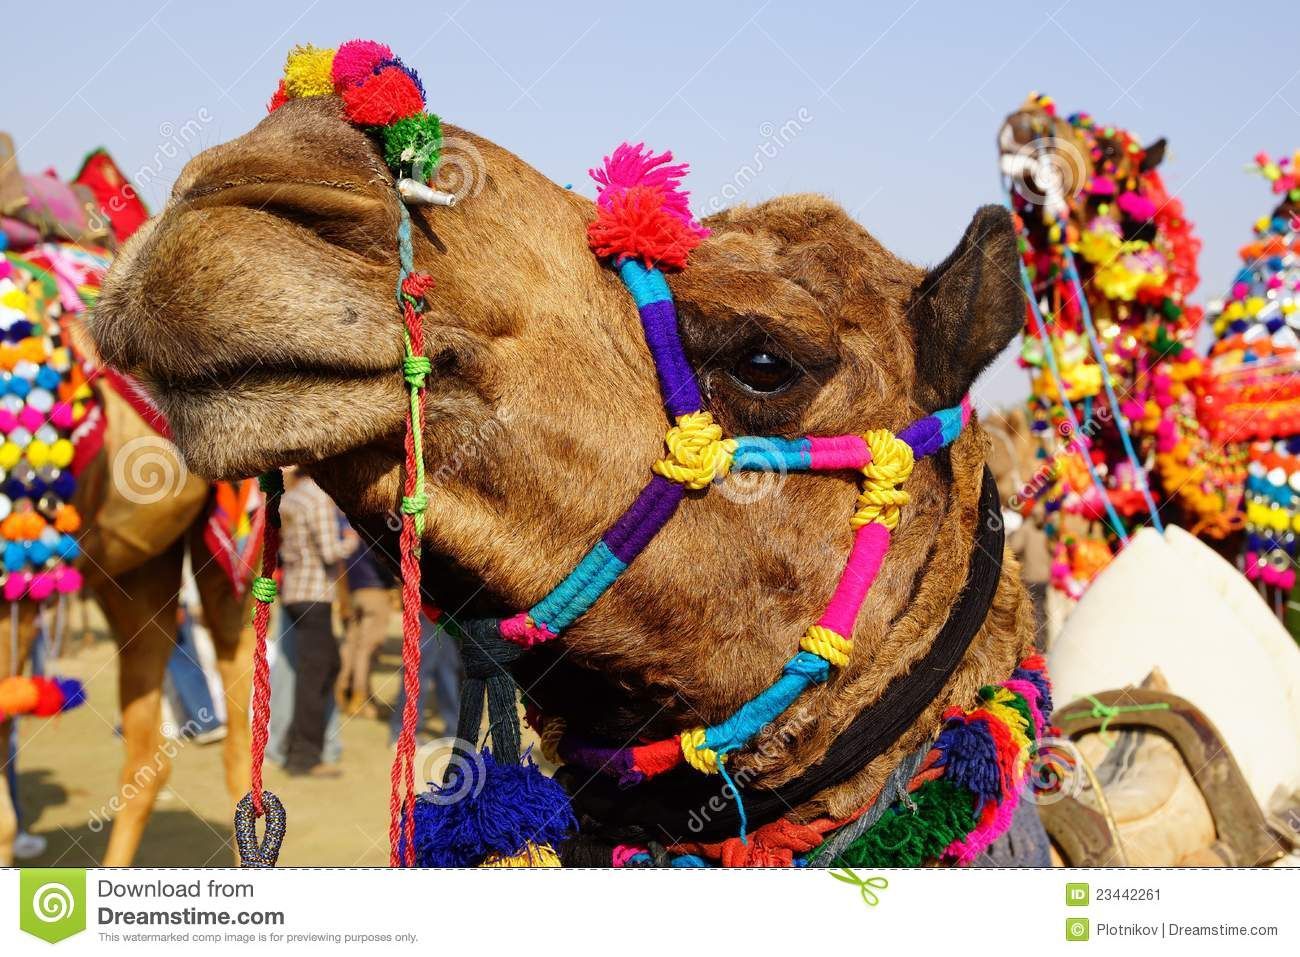 Camel Festival In Bikaner, India Stock Image - Image: 23442261